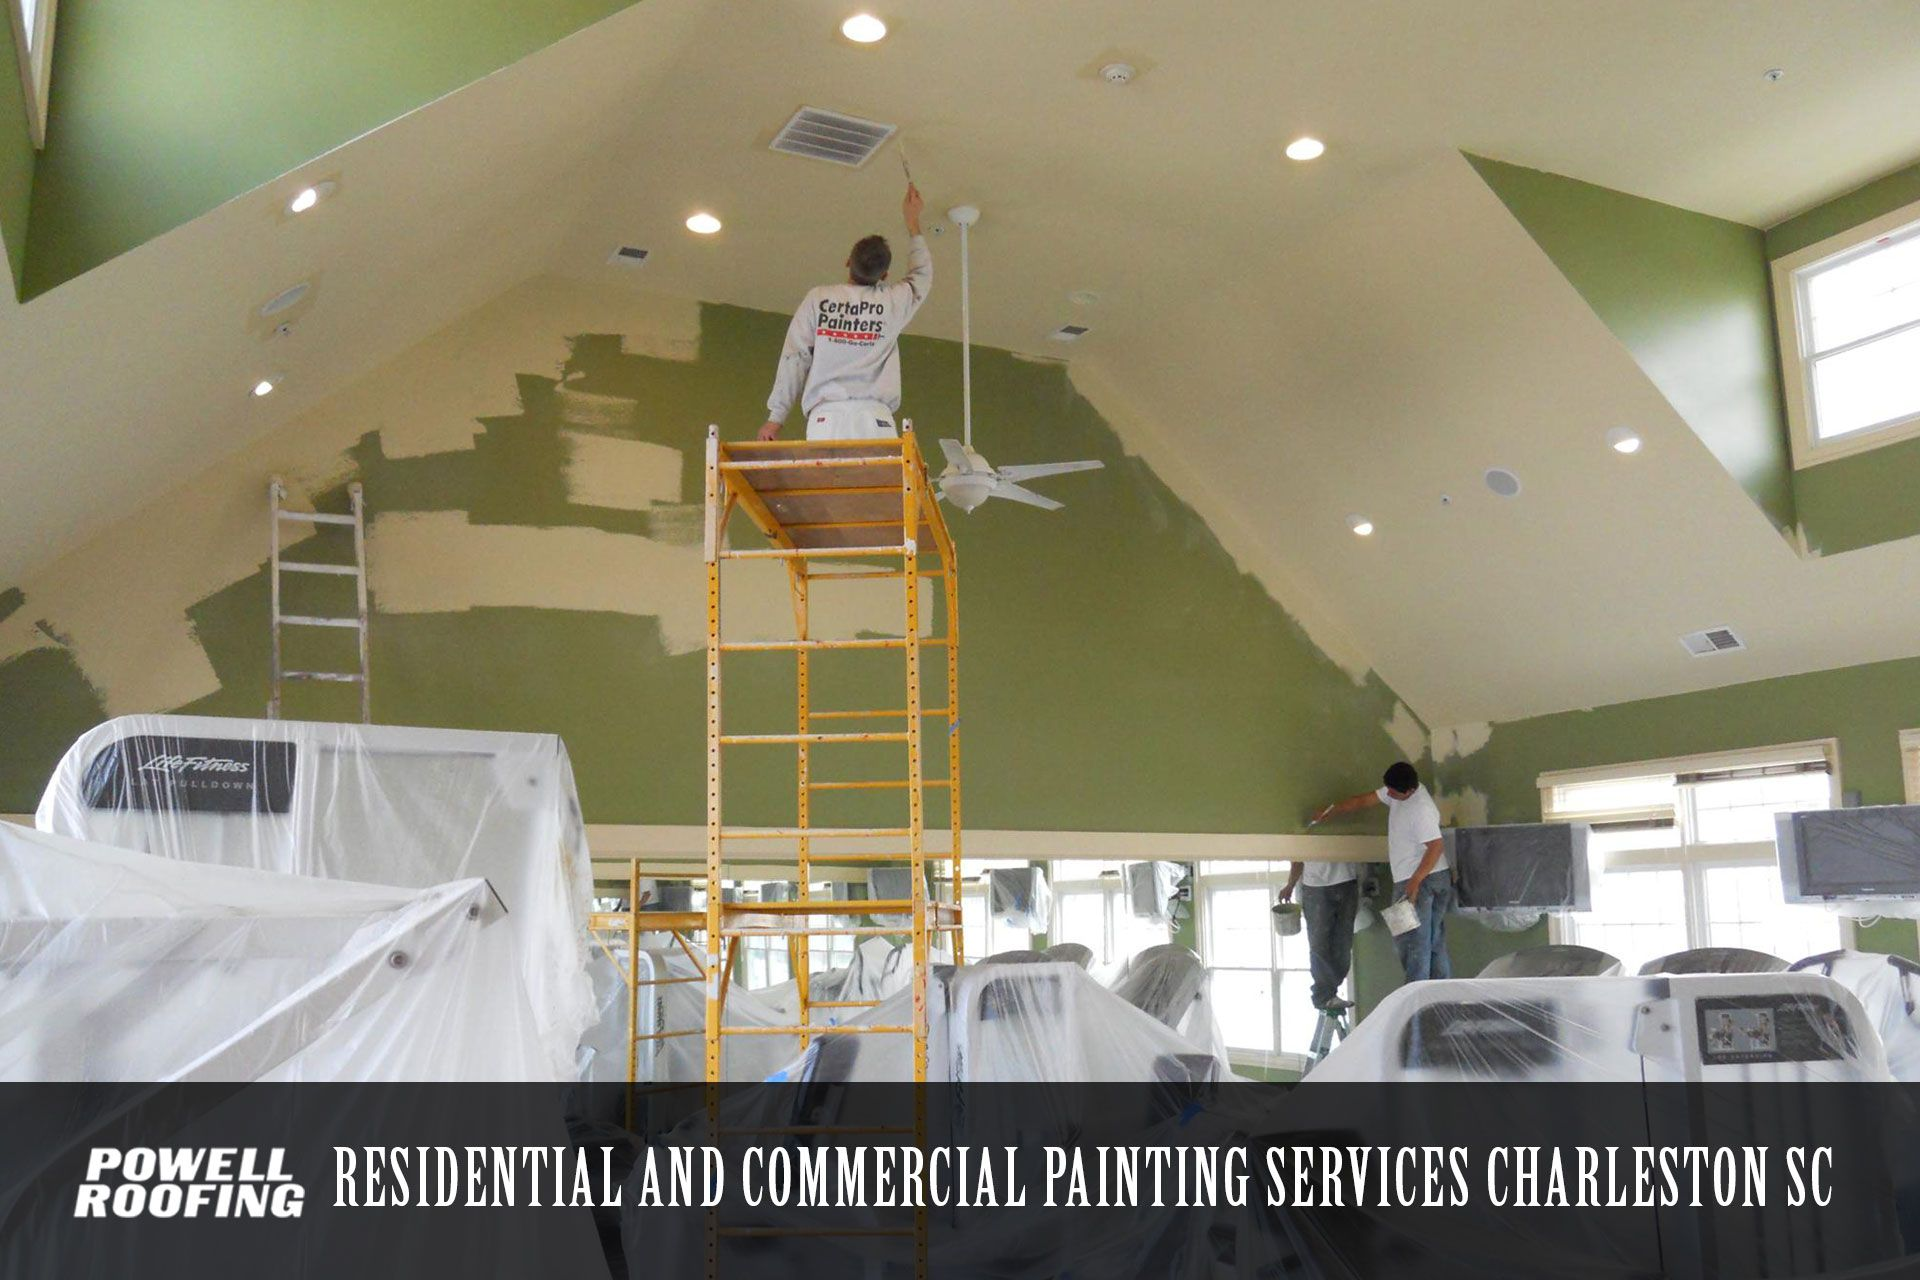 Best Experienced Commercial Painting Contractors In Charleston Sc Are Provided By Powell R Bathroom Remodeling Contractors Painting Contractors Home Insulation